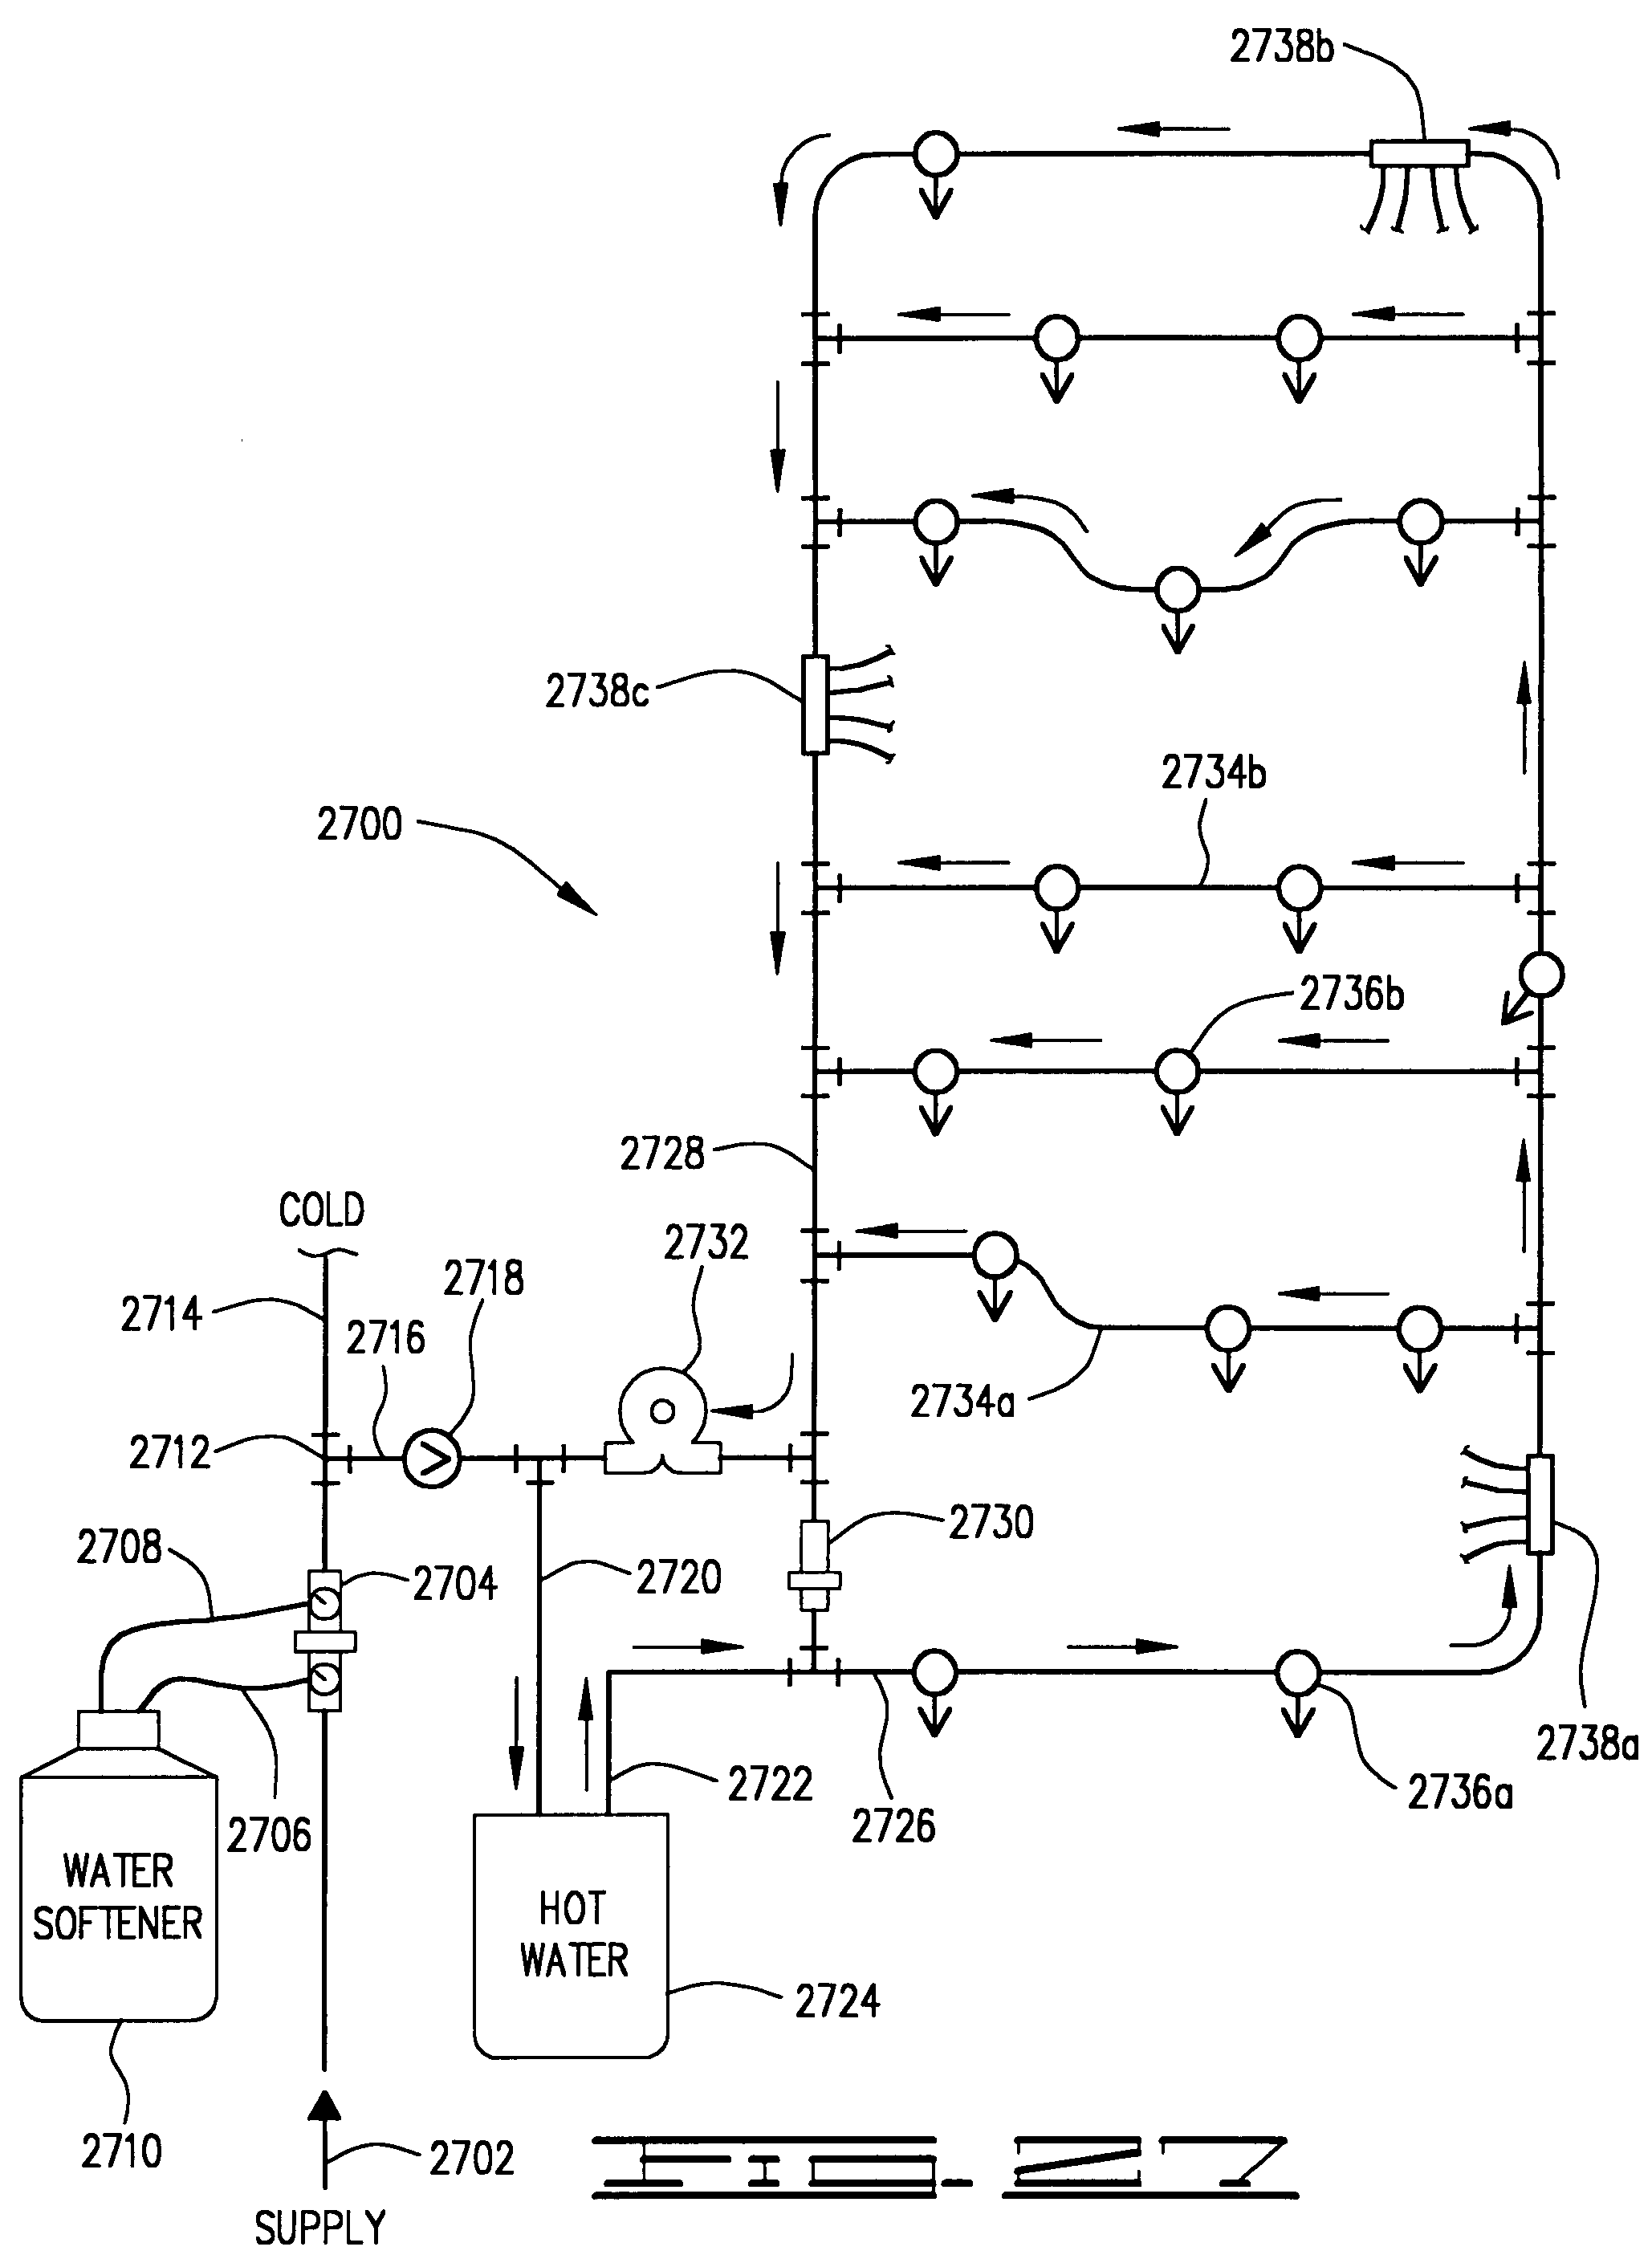 US7592921 in addition Military Fire Plan Symbols besides Typical Fire Alarm System Wiring Diagram also US5644293 besides Typical Fire Alarm System Wiring Diagram. on fire alarm wiring classifications